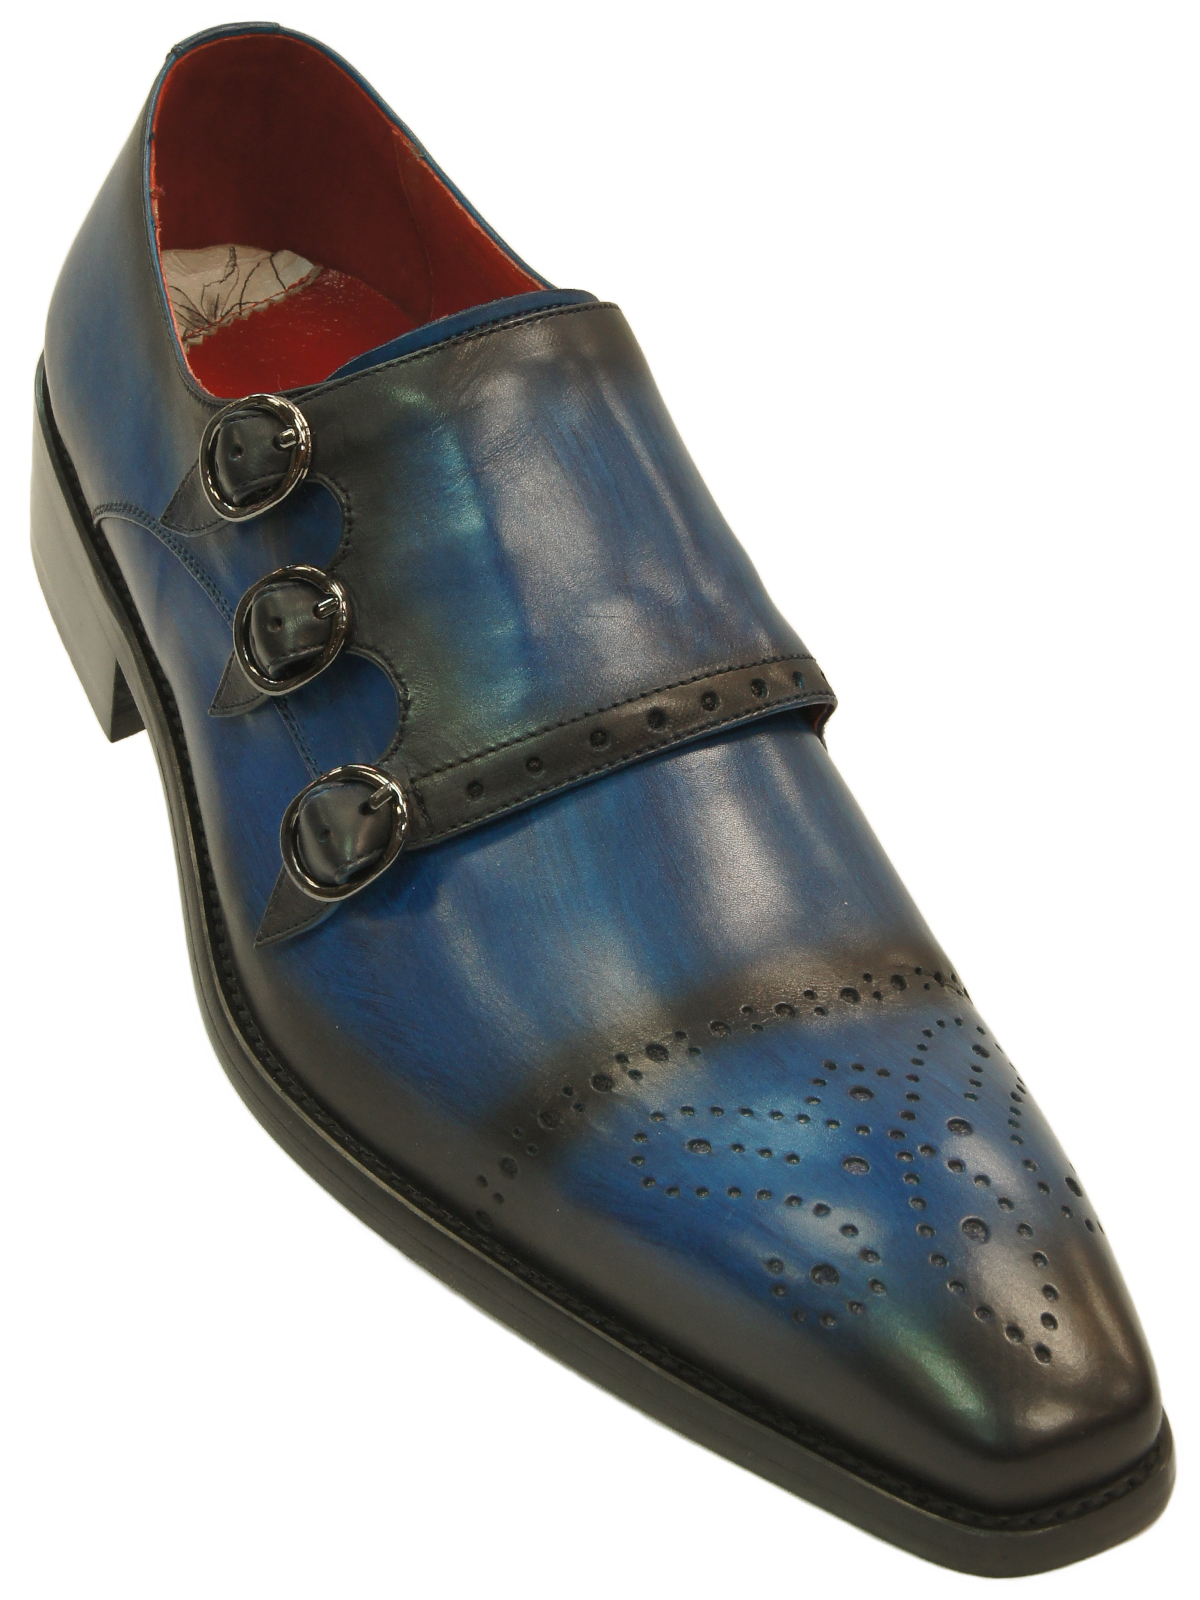 376a61924d0e8 Fiesso Mens Blue Black Gradient Leather Perforated Triple Monk Strap Dress  Shoe. Fiesso ...